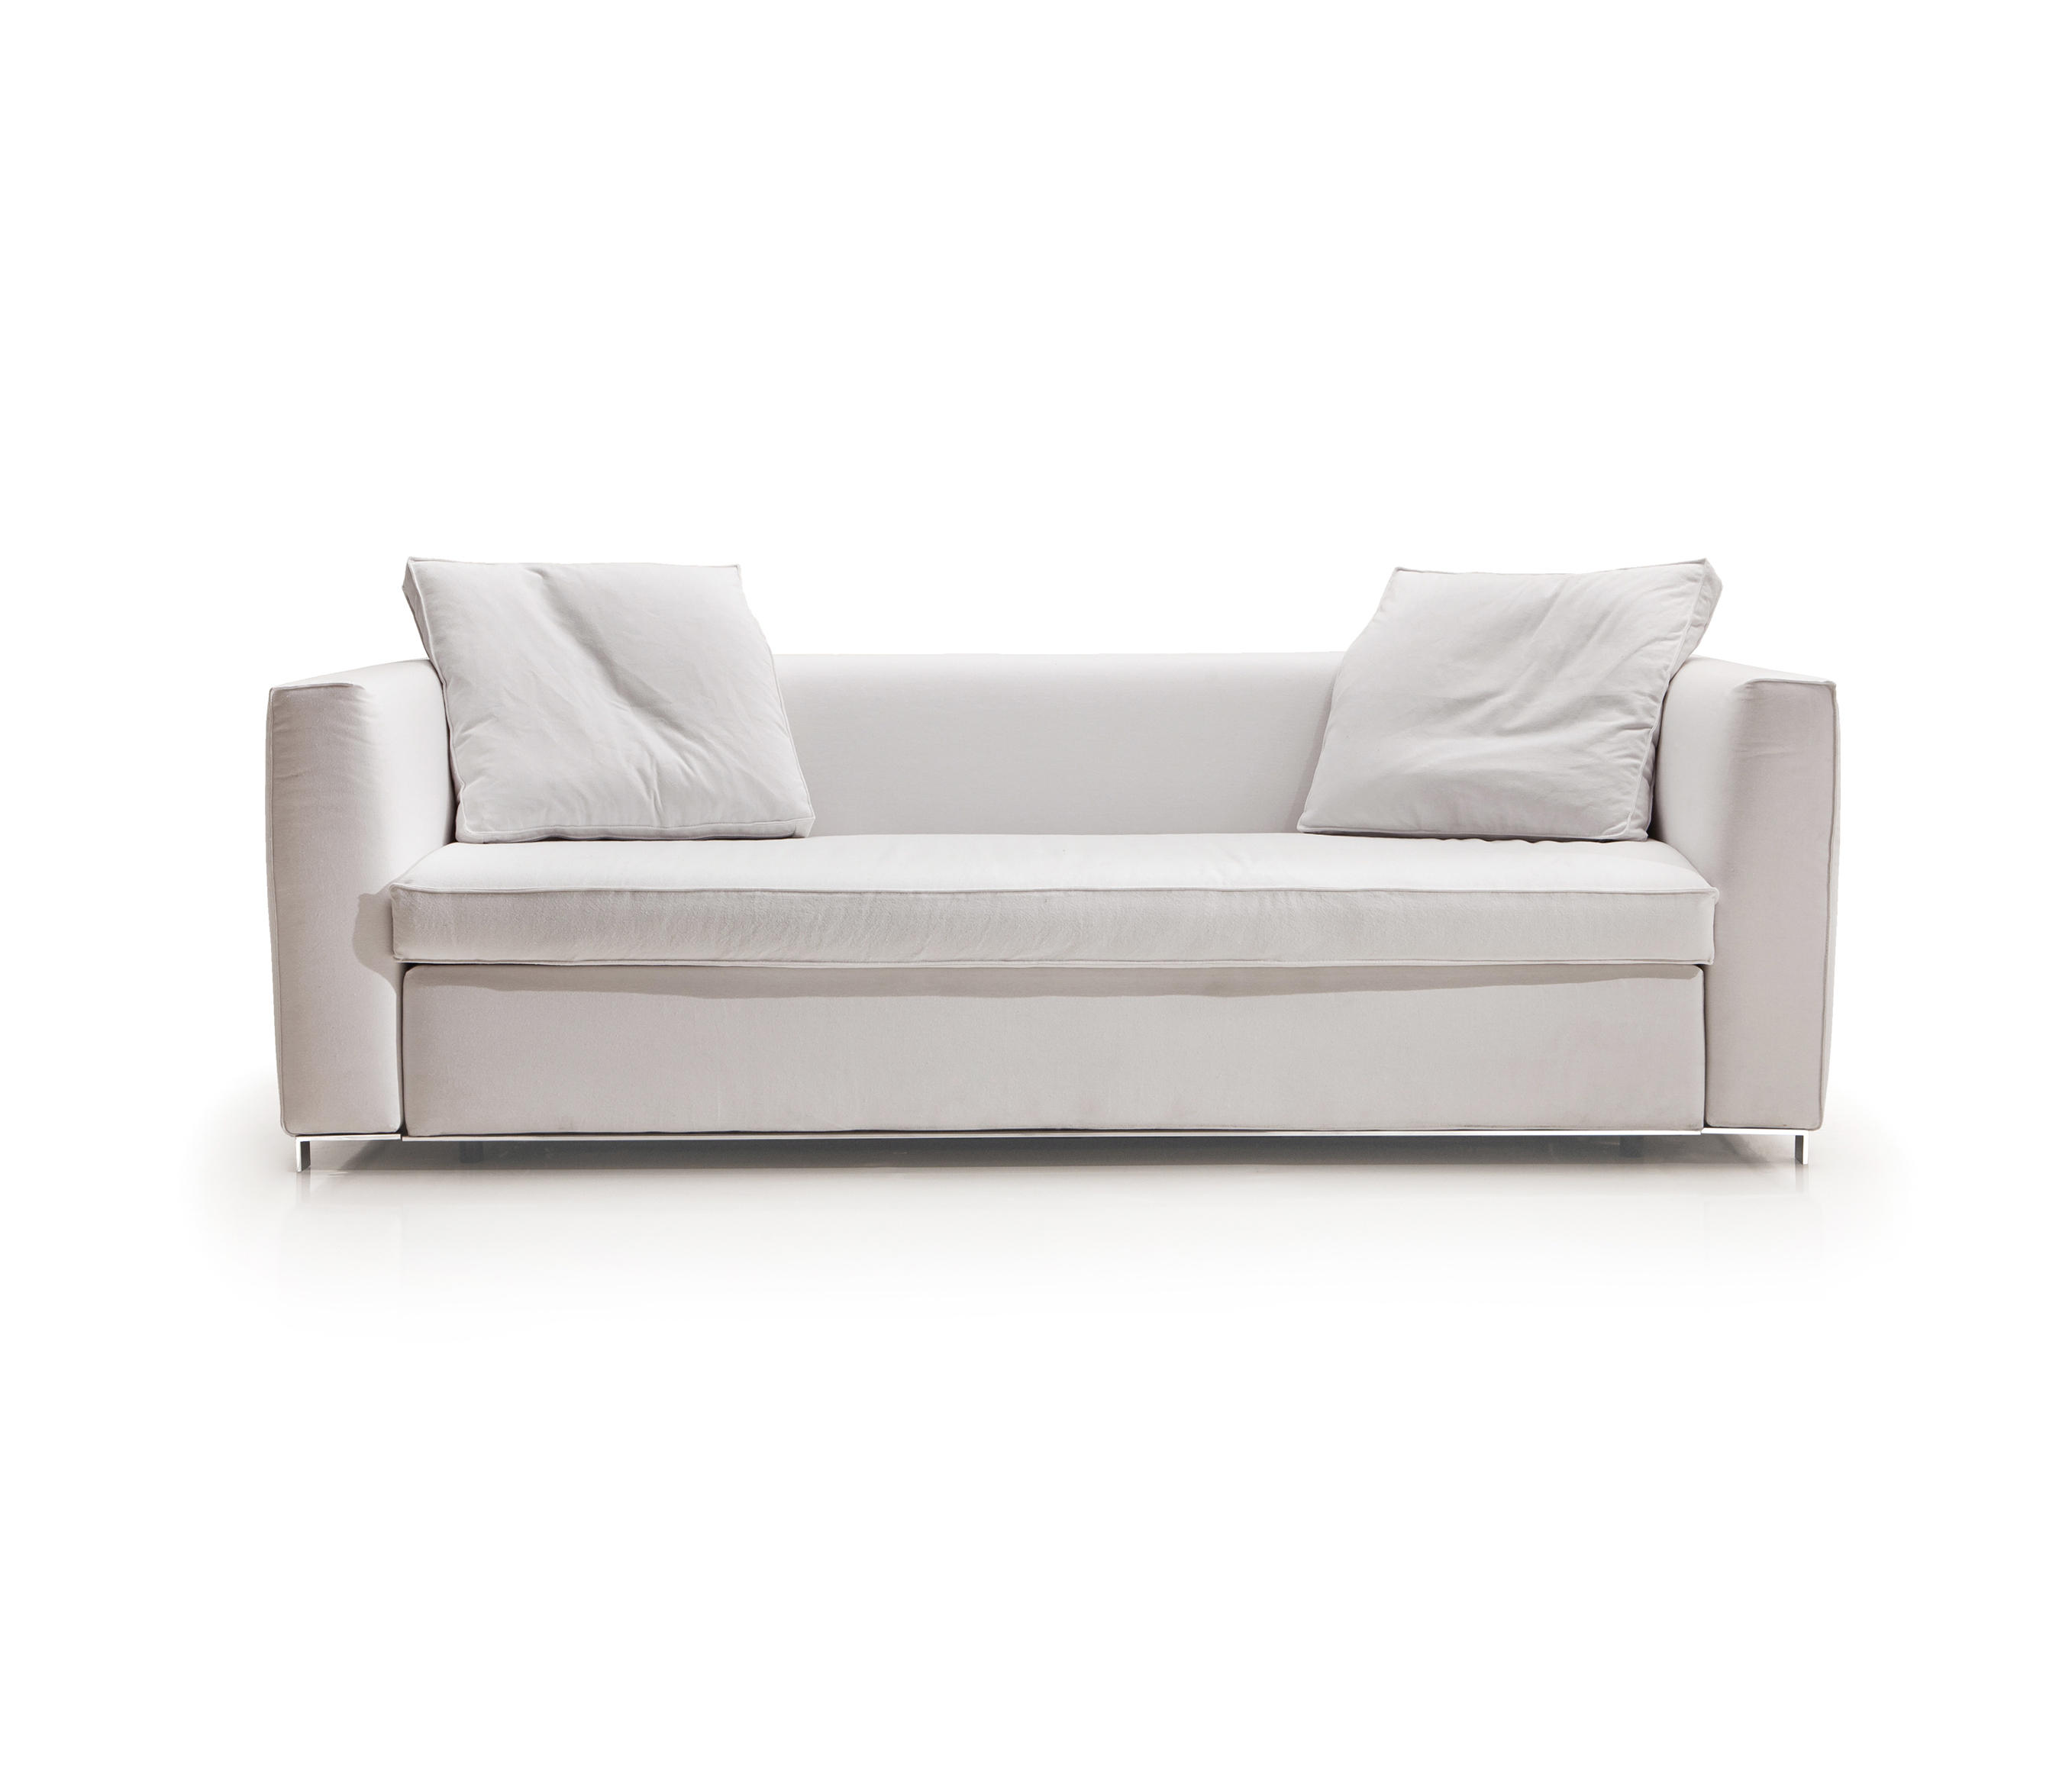 BEL AIR 2800 BEDSOFA Sofa beds from Vibieffe